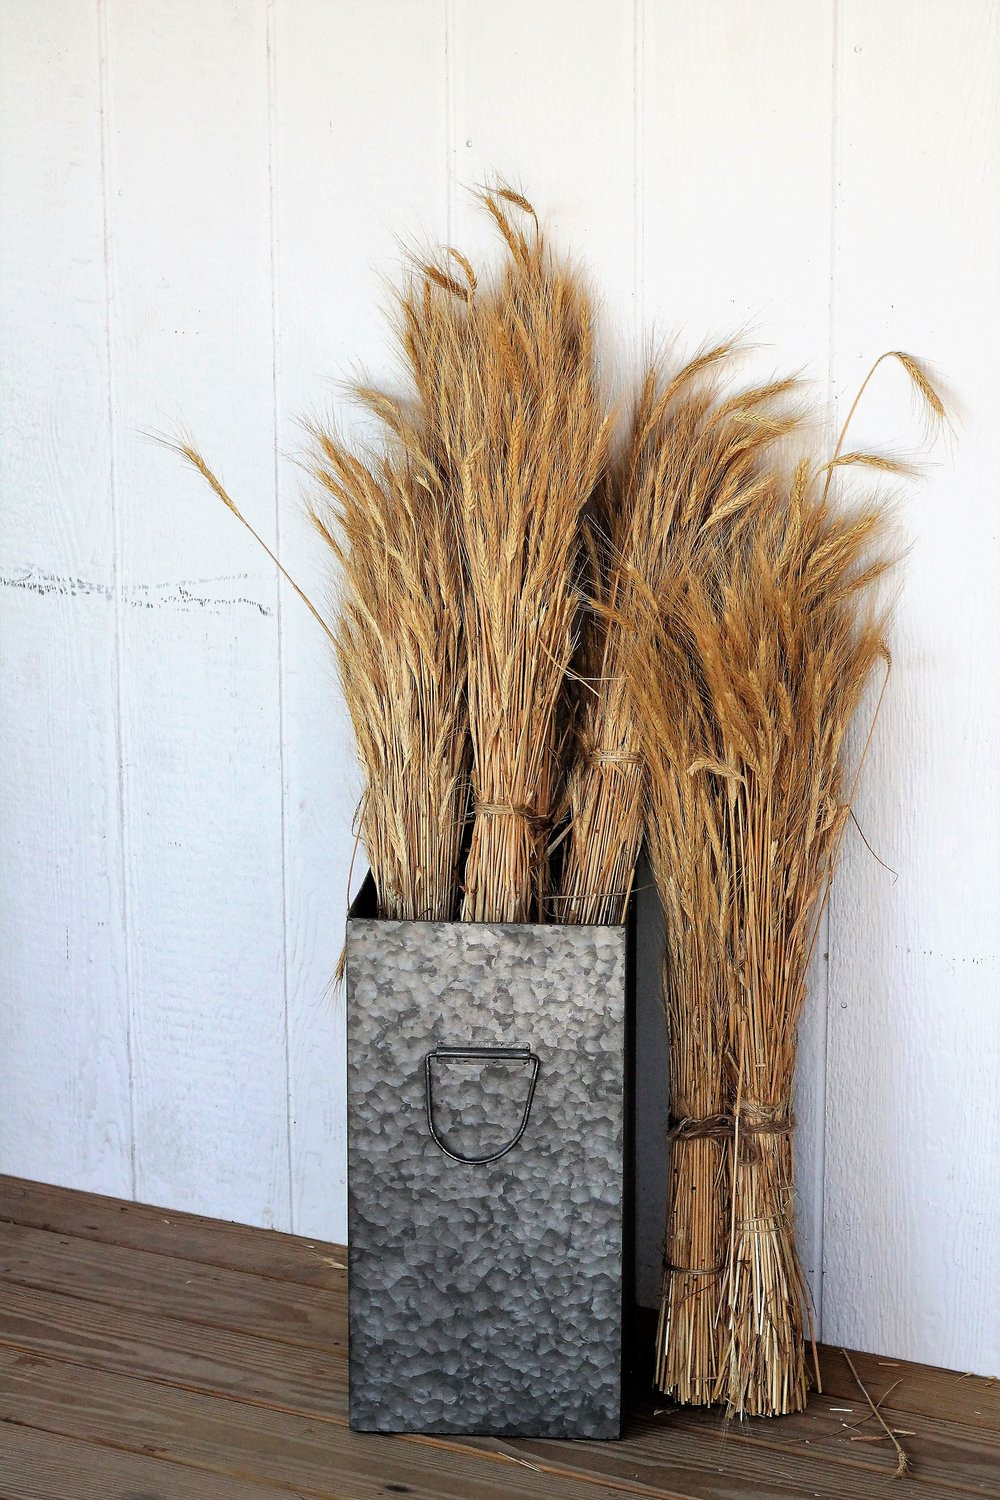 galvanized container holding stalks of wheat, classic farmhouse!